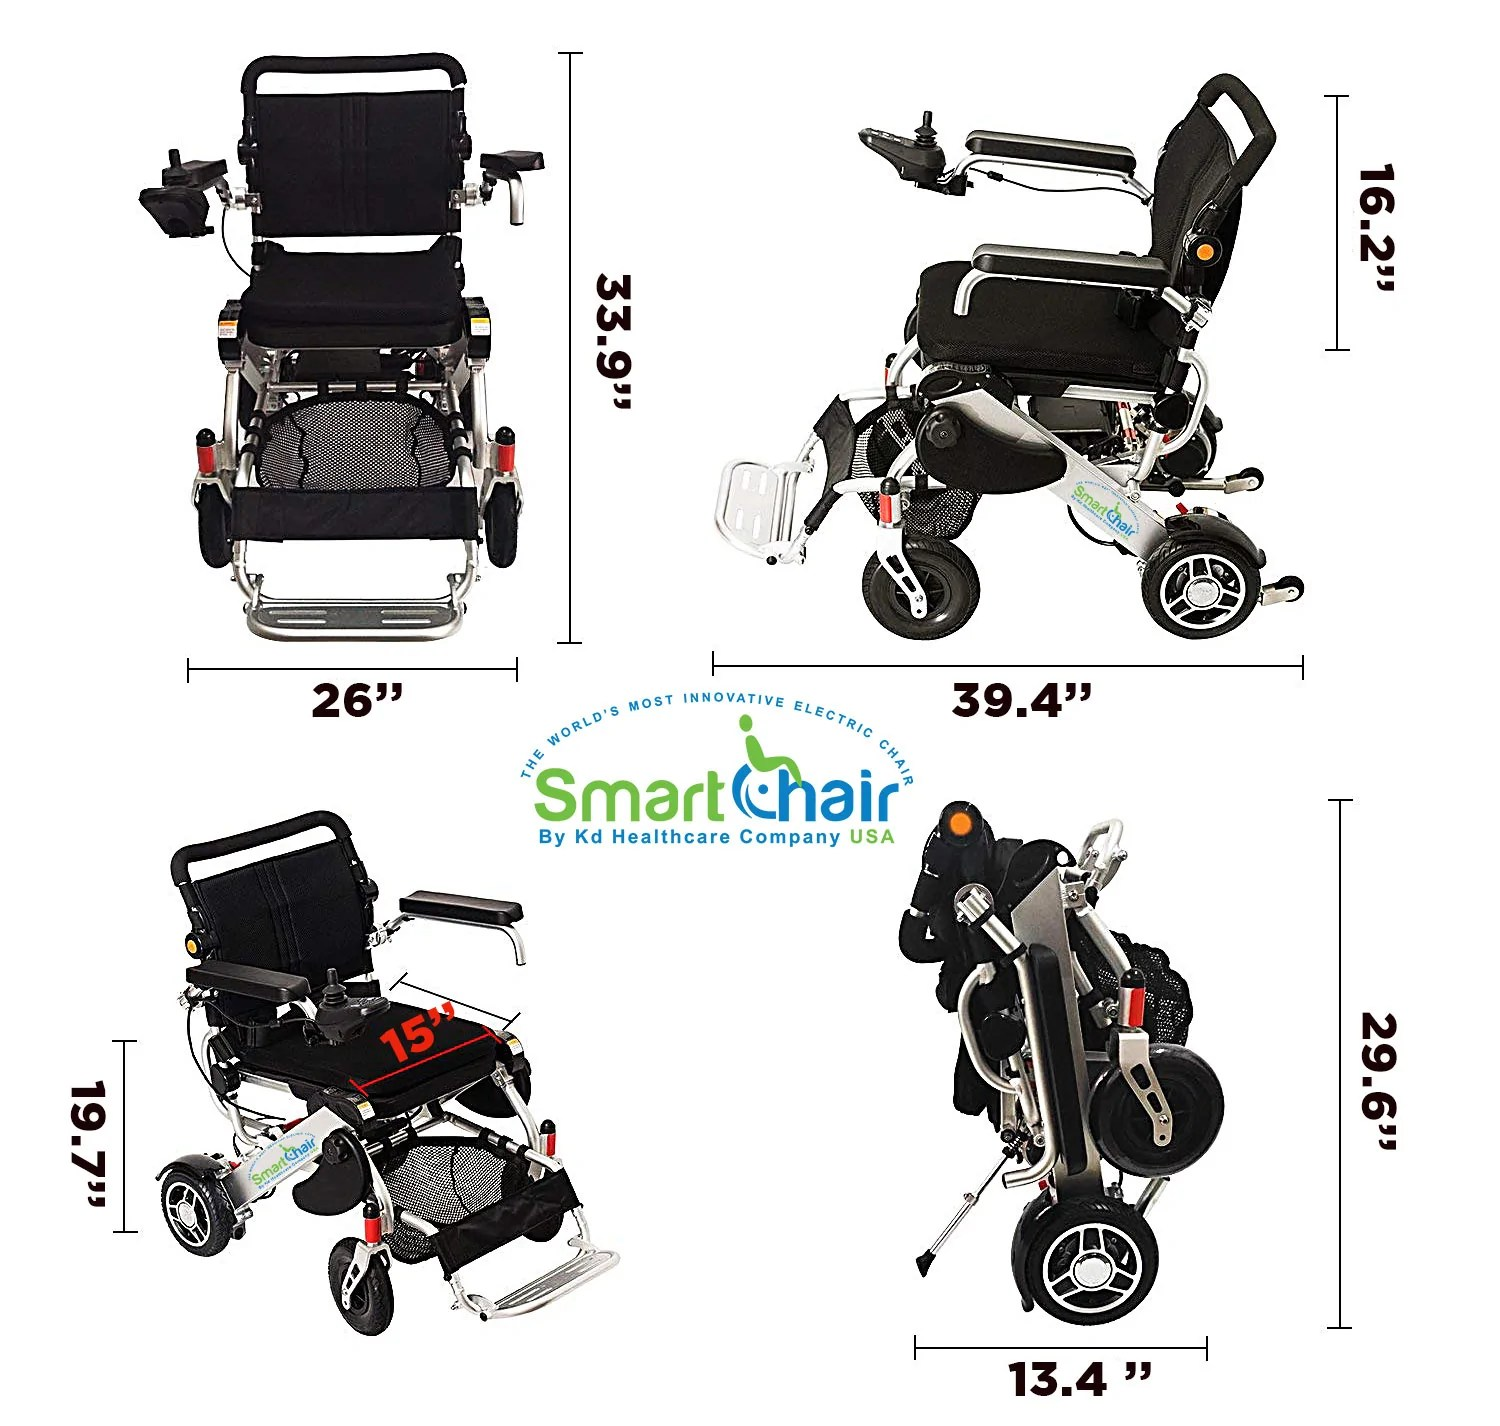 smart chair electric wheelchair by kd healthcare desk ball heavy duty power foldable and